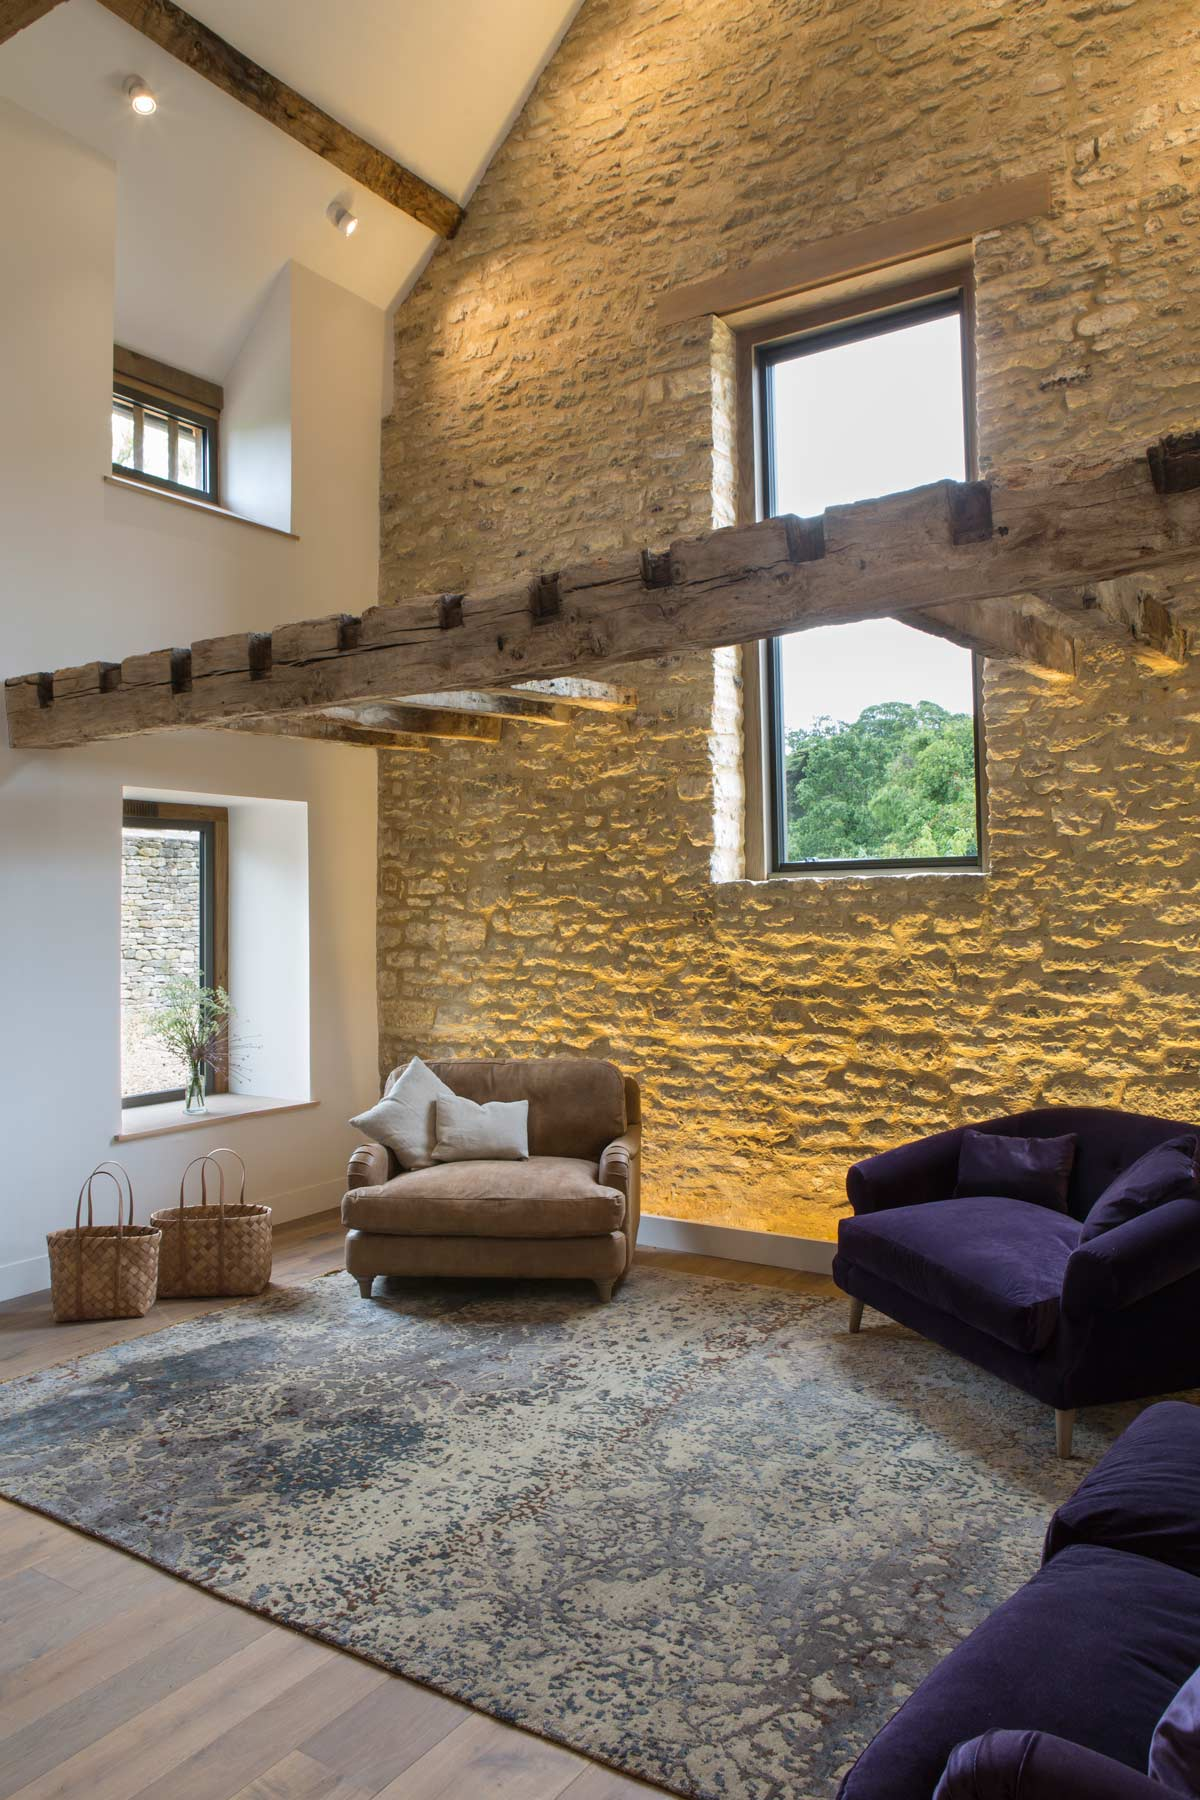 barn-conversion-cotswold-stone-wall-wash-lighting-rogue-designs.jpg